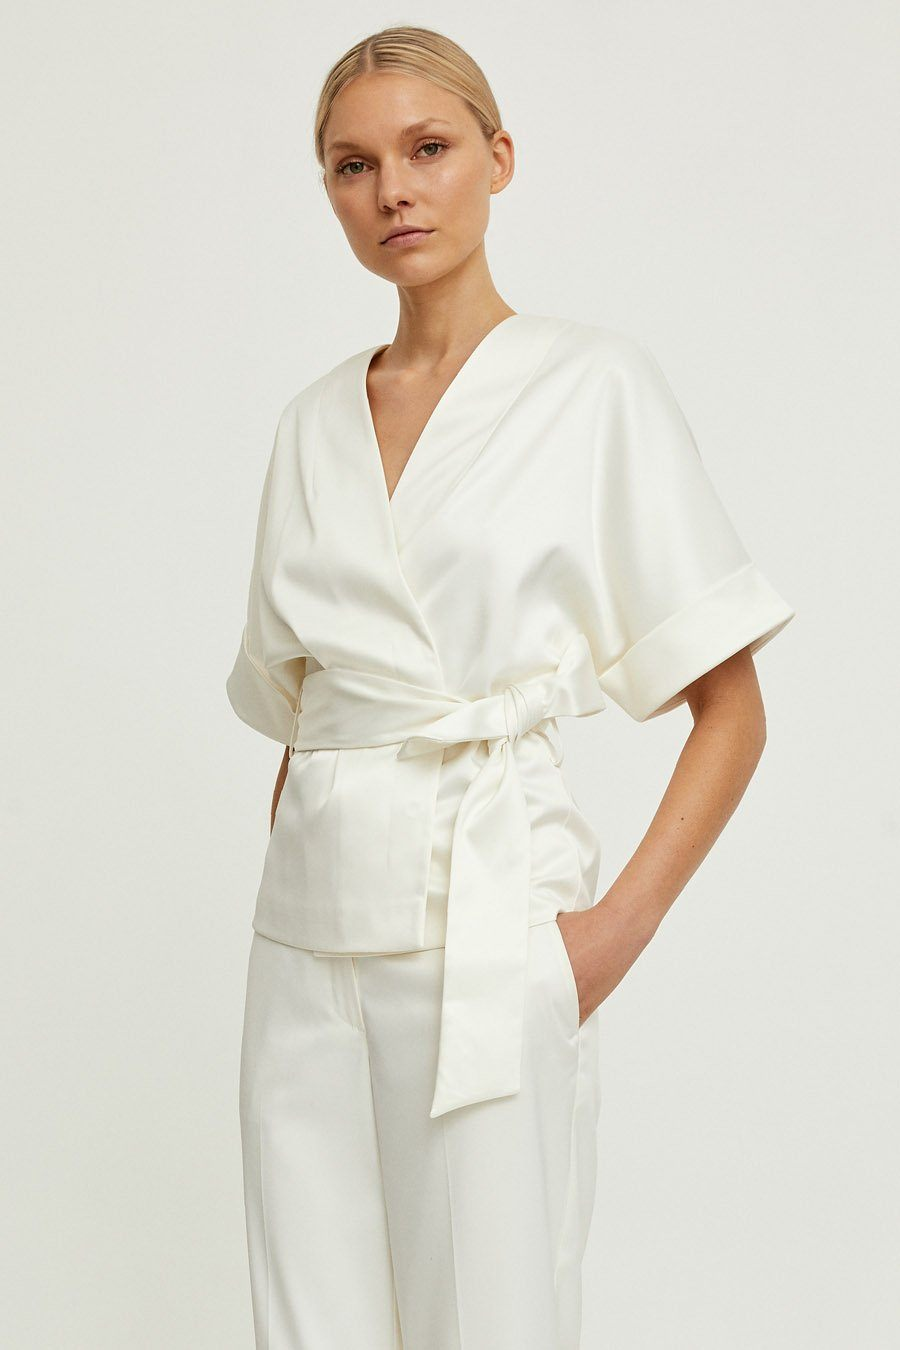 BEDOU JACKET - OFF WHITE Jacket Stylein